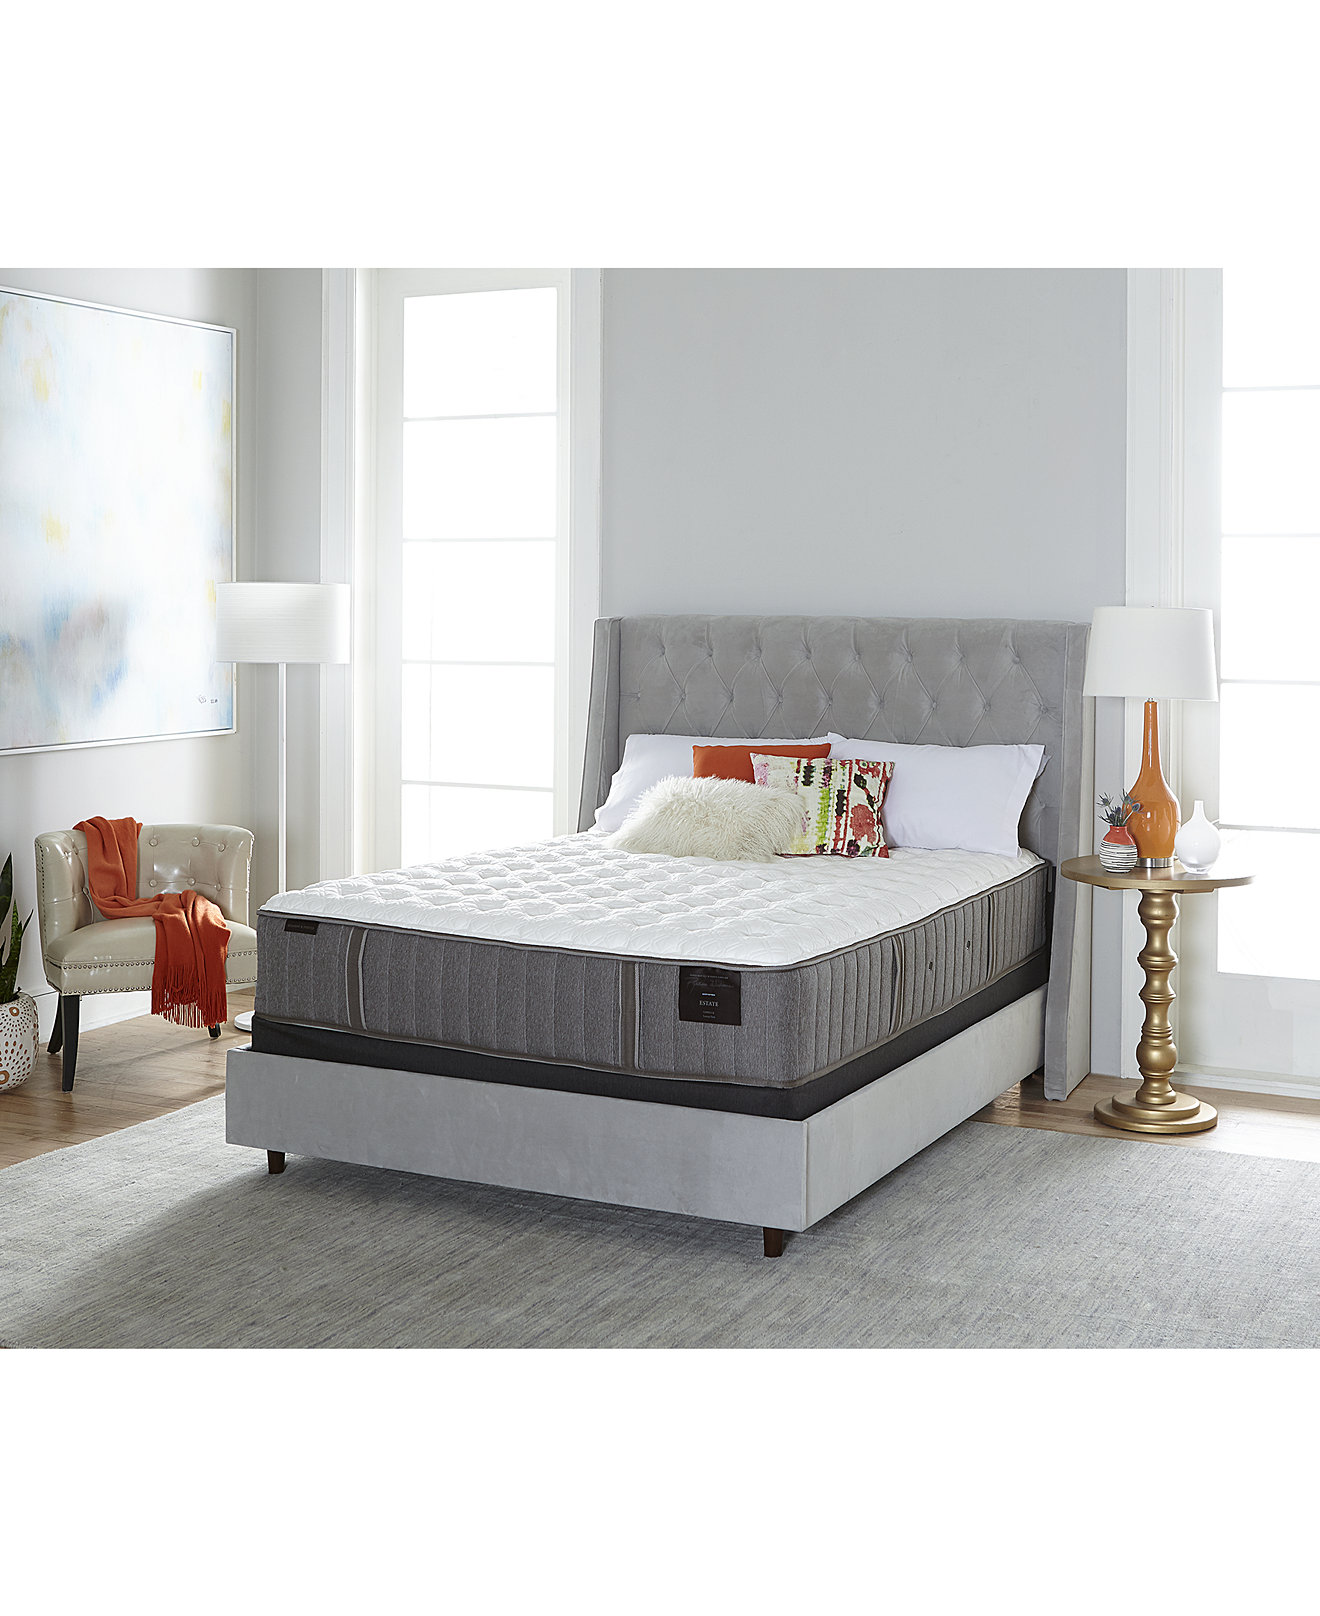 "Stearns & Foster Estate Garrick Luxury 14"" Firm Mattress Sets, Created for  Macy's"